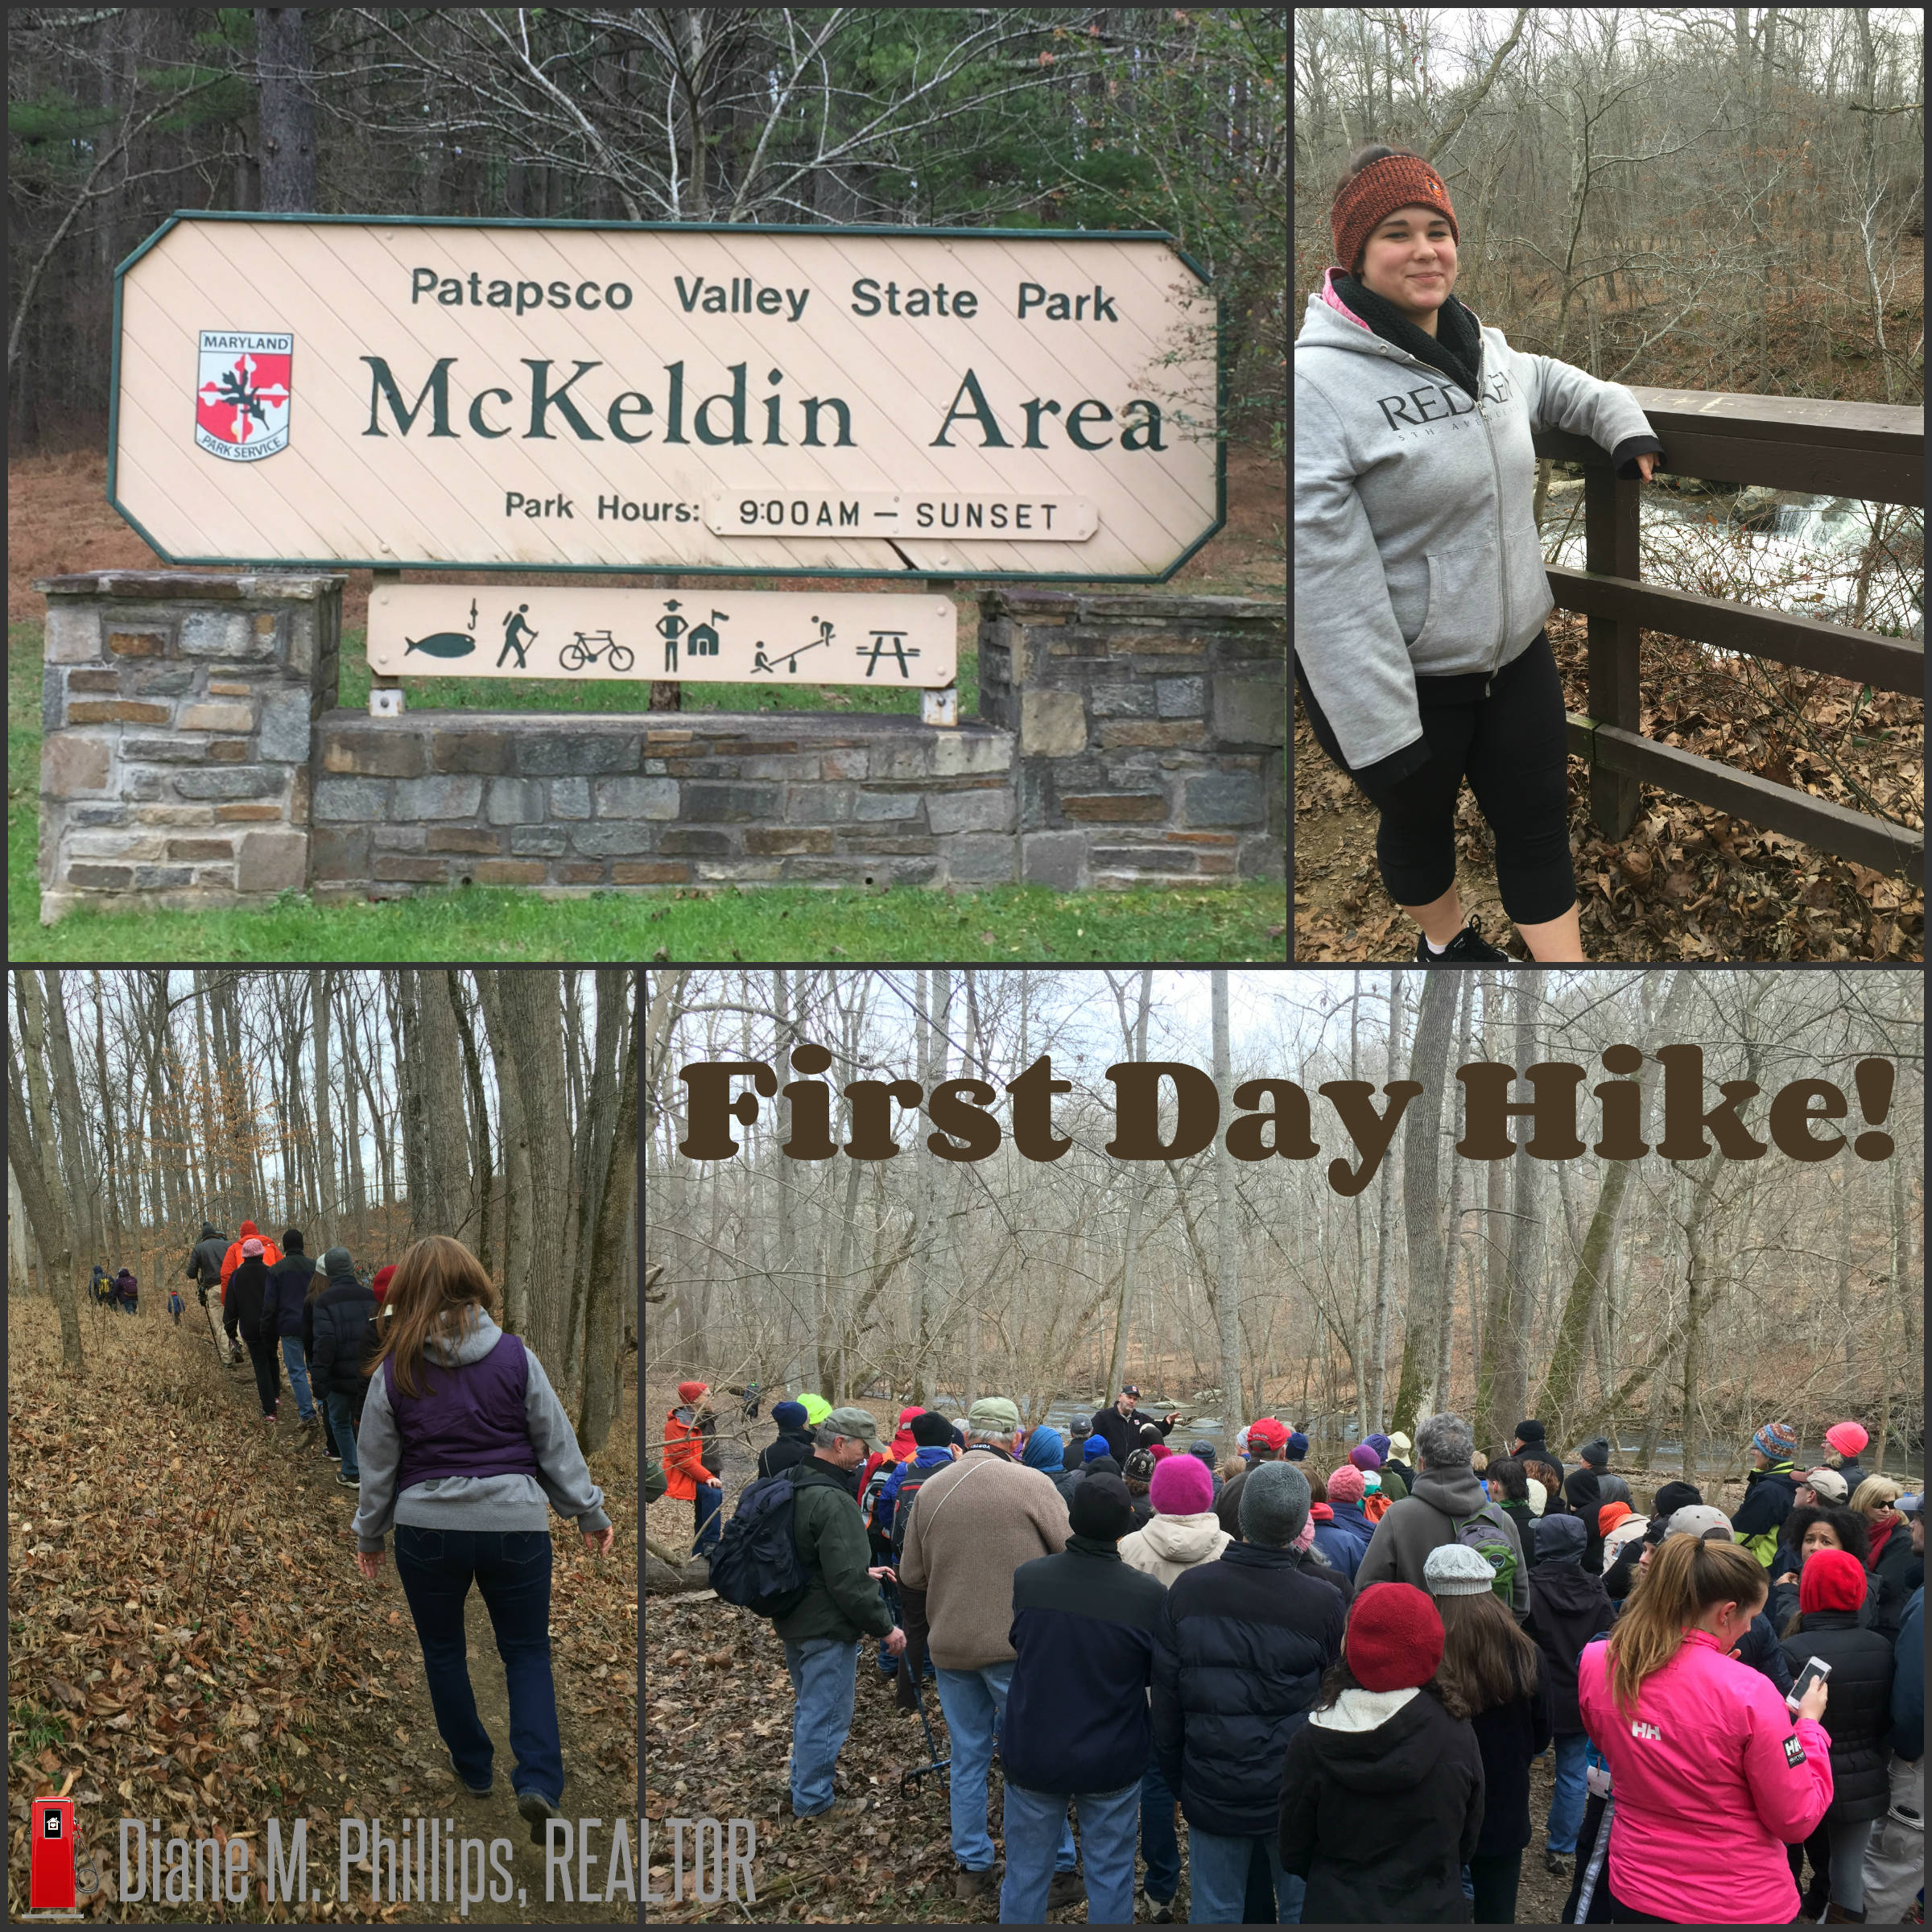 First Day Hike at the McKeldin Area